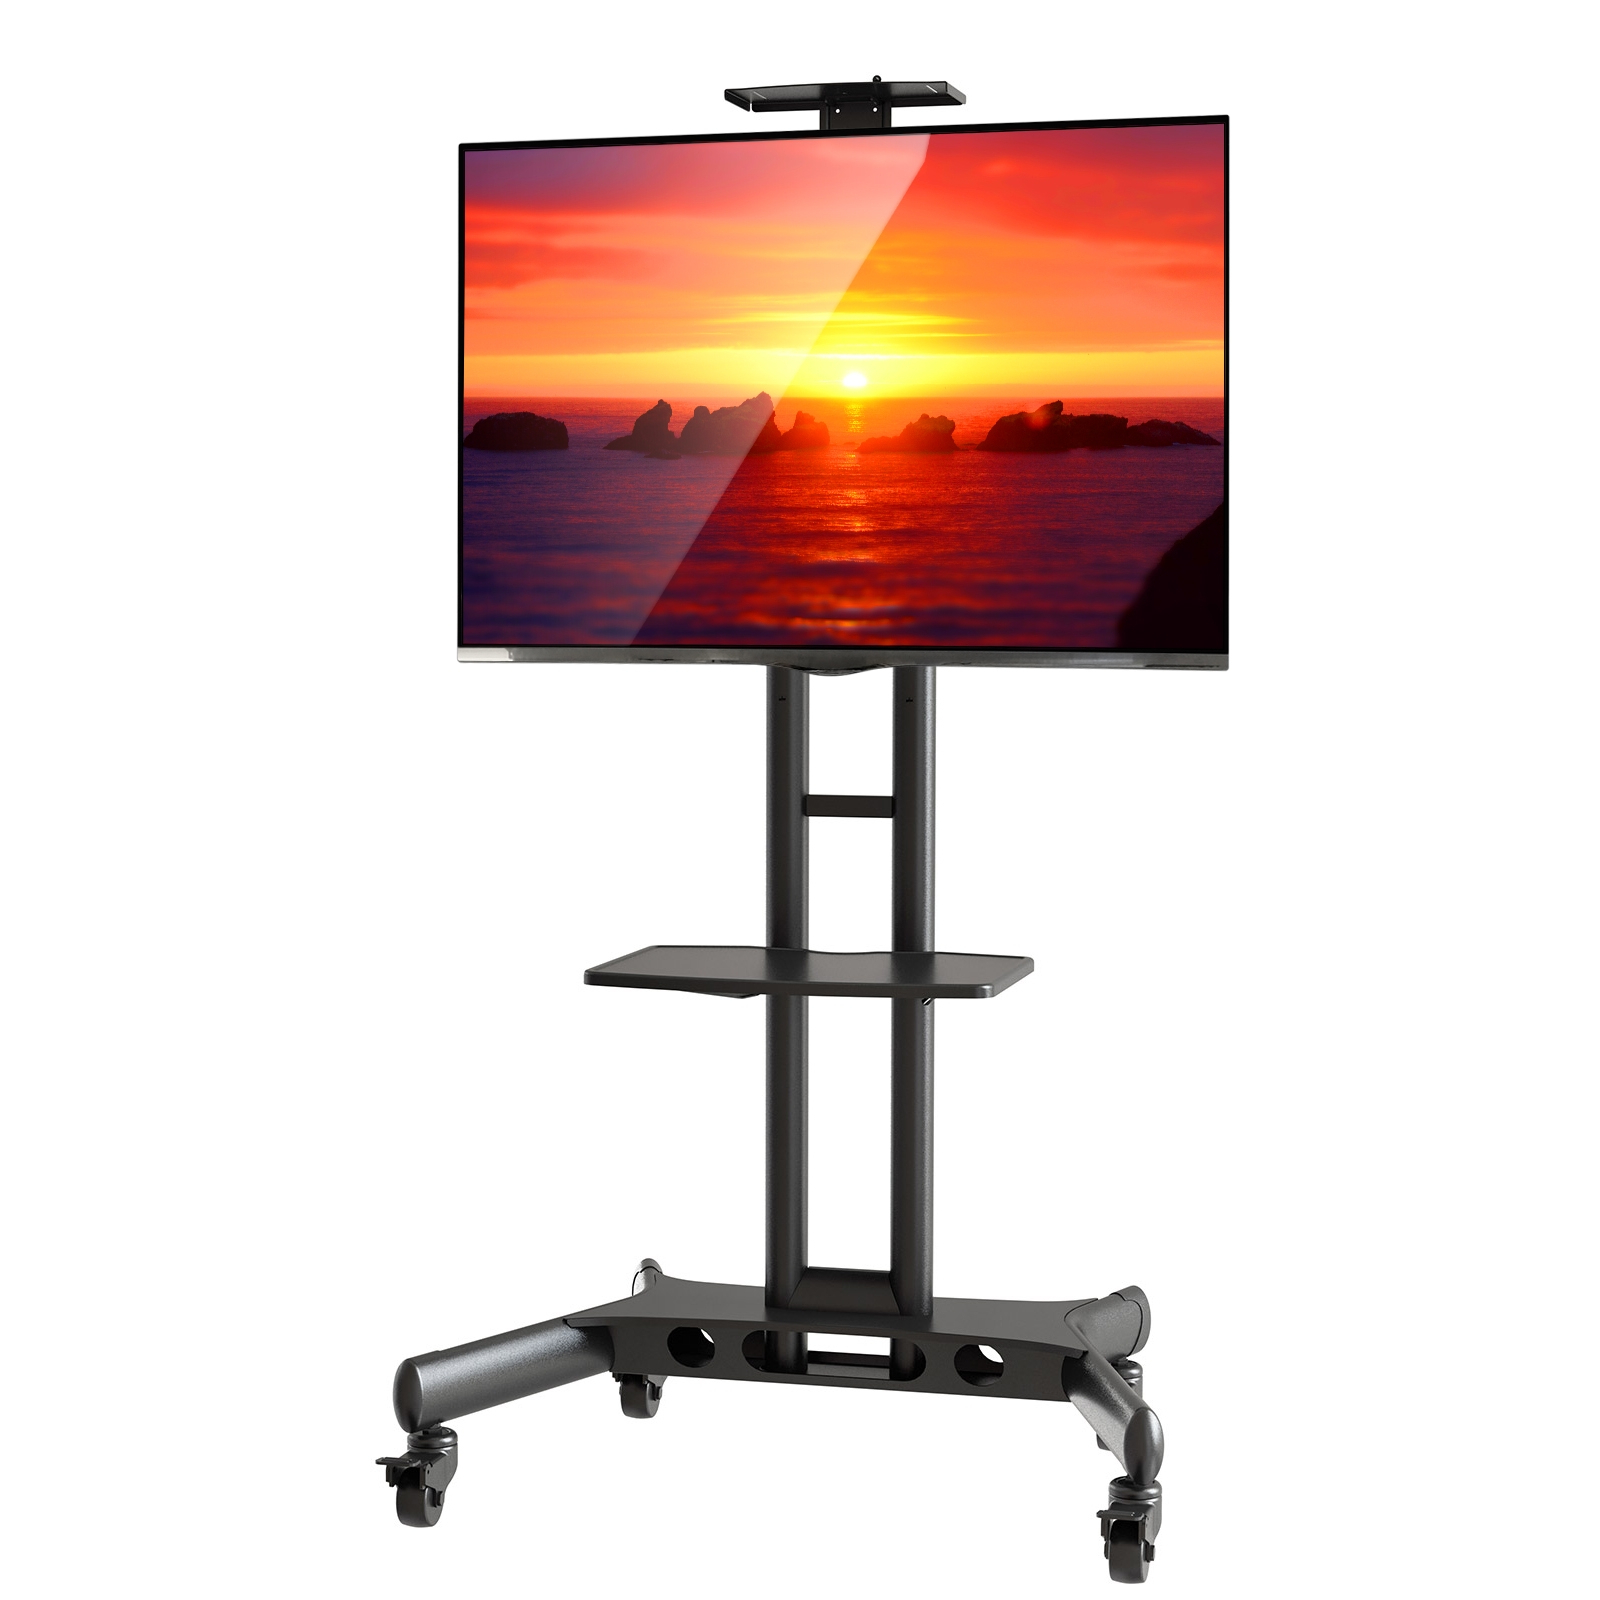 Mount Factory Rolling Tv Cart Mobile Tv Stand For 40 65 Inch Flat For 2017 Denver Tv Stands (View 11 of 20)